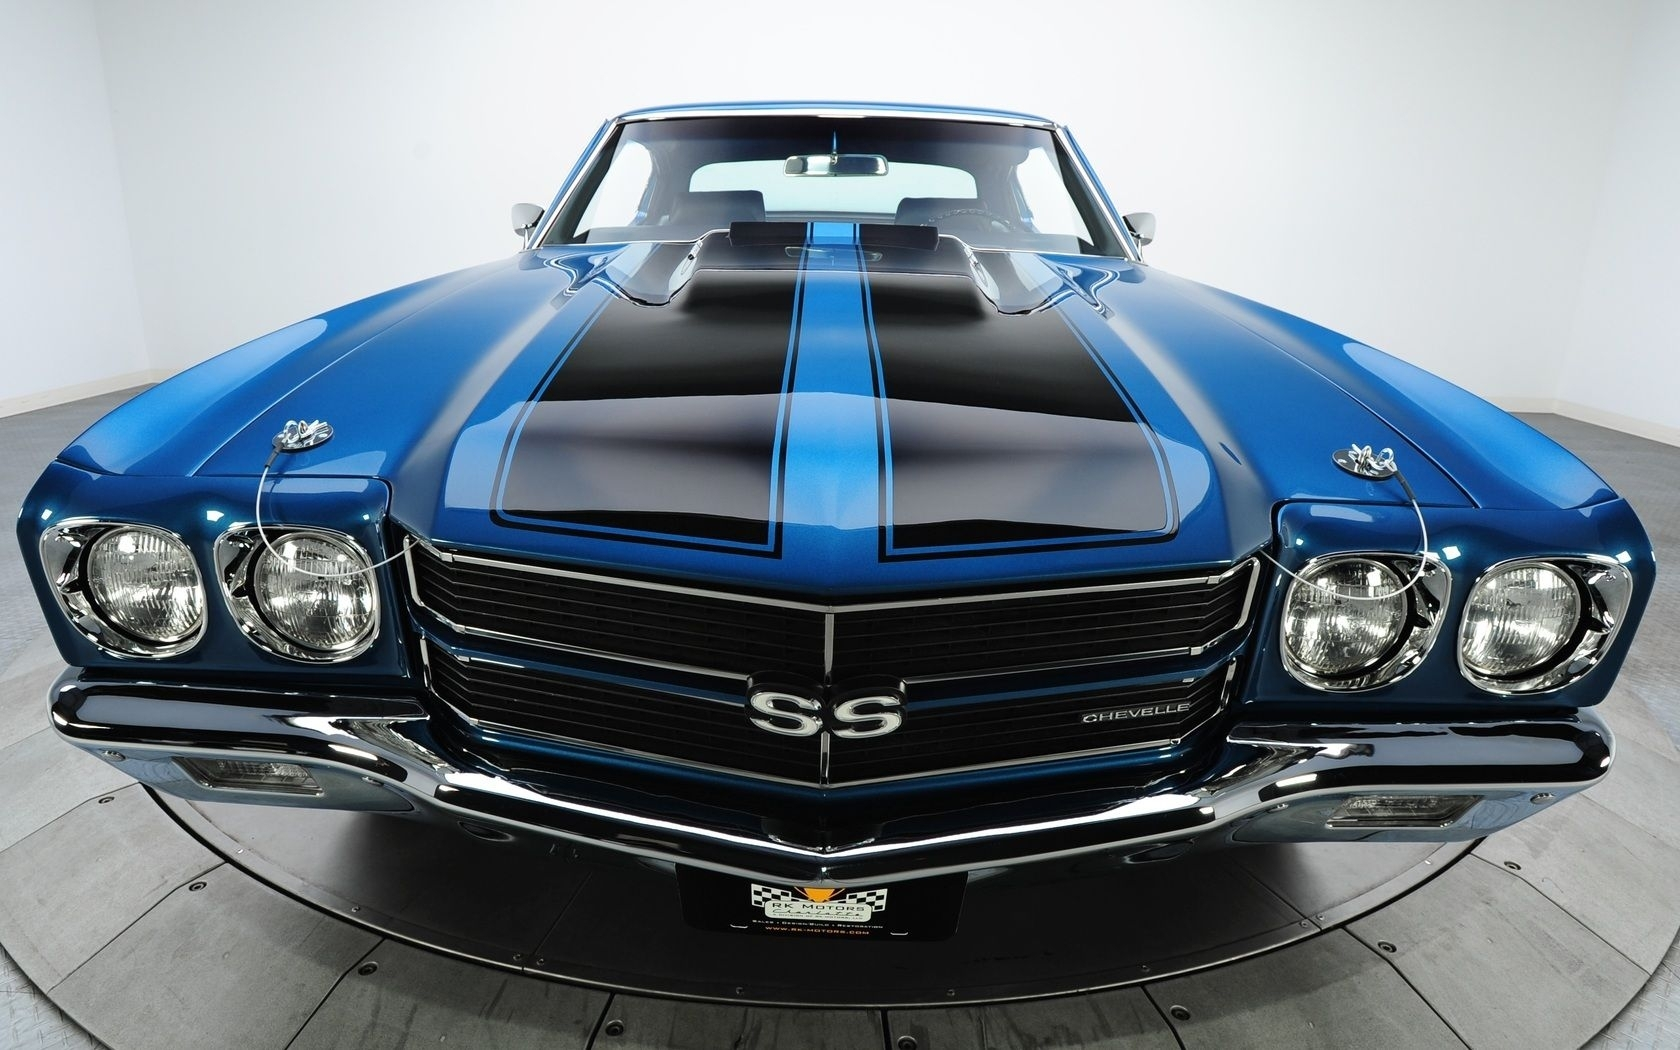 chevrolet shevil muscle cars hd best wallpapers 1680x1050 pixel hd